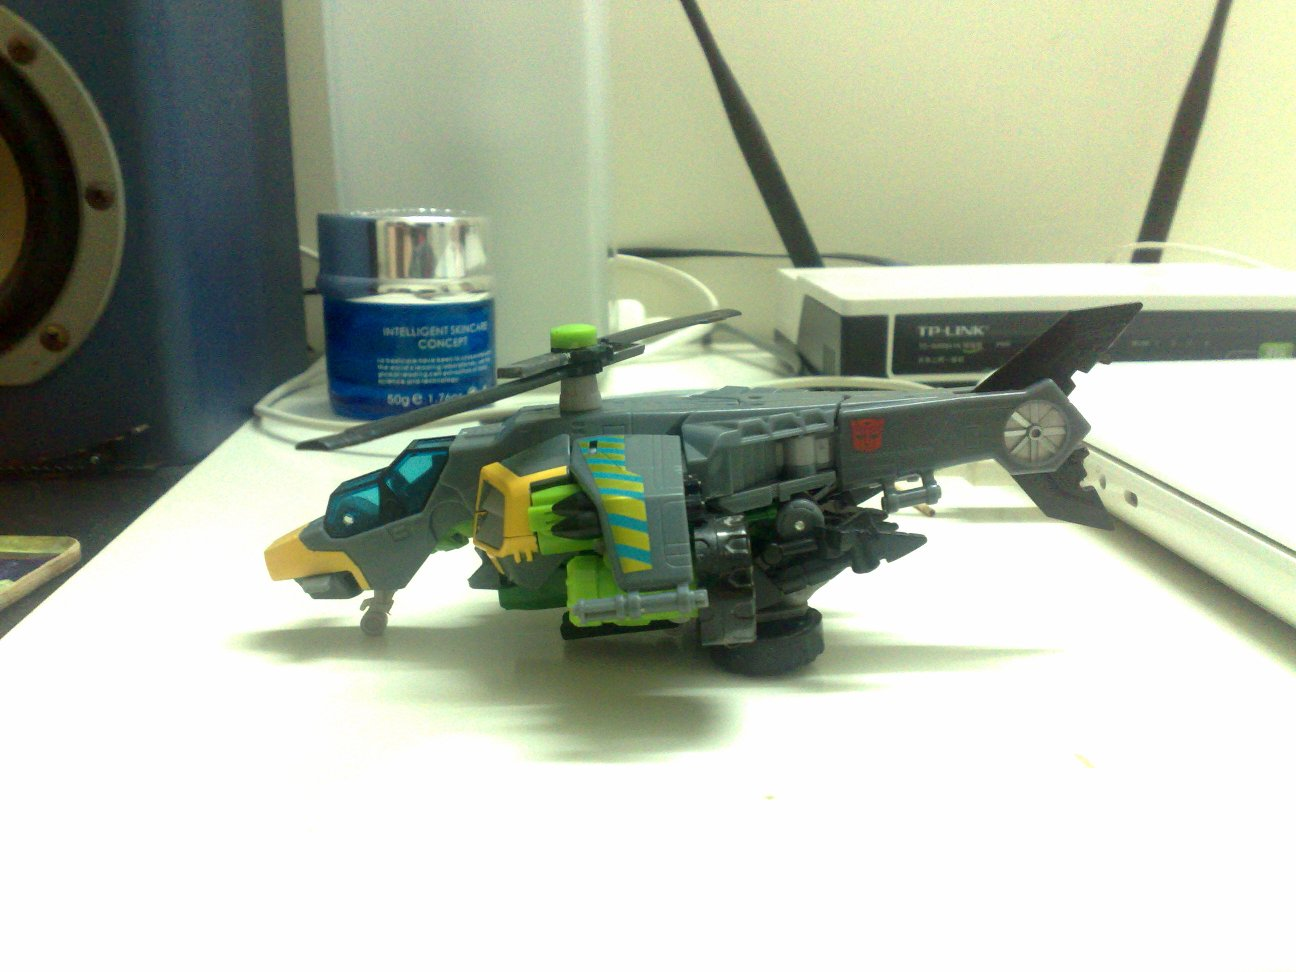 hah finally I got my asia exclusize generation Springer!-4774_f86c1343482768a60b3e3c6f77141.jpg